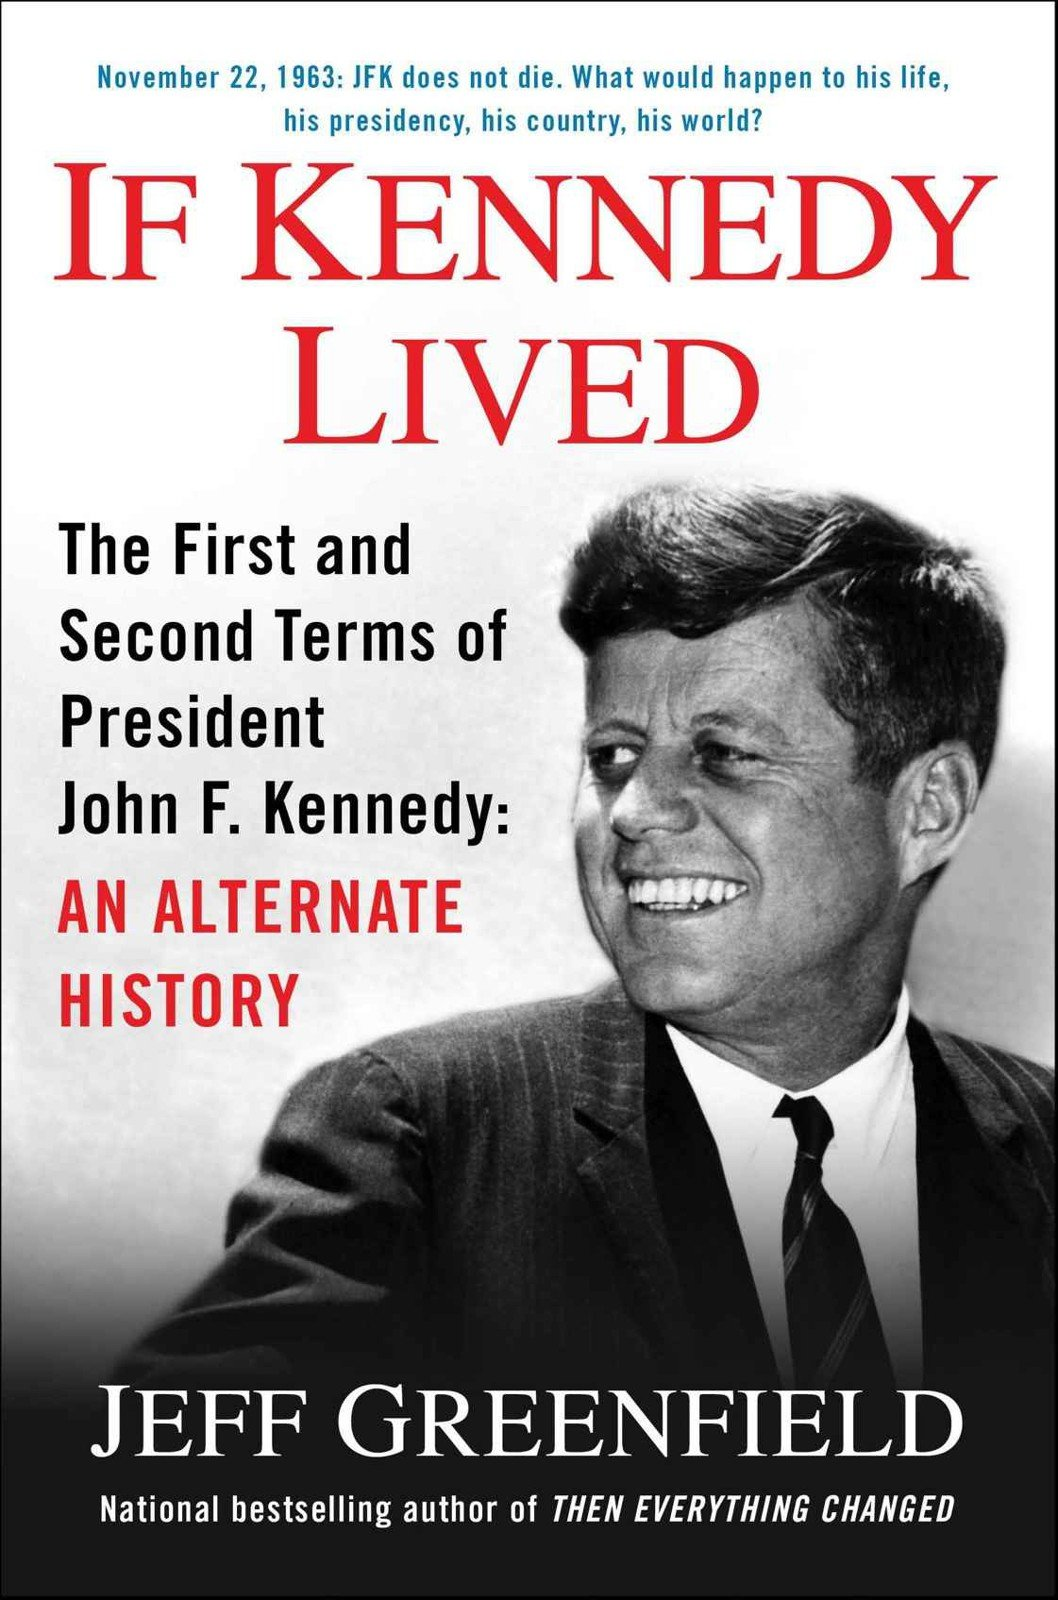 account of the life and presidency of john f kennedy Jackie kennedy believed lyndon johnson killed jfk written by richard cameron oct 18, 2014 washington, october 17, 2014 — it has been widely reported that jacqueline kennedy onassis, widow of president john f kennedy, shared with family members she was certain that kennedy's vice president lyndon baines johnson, arranged to have her husband murdered.